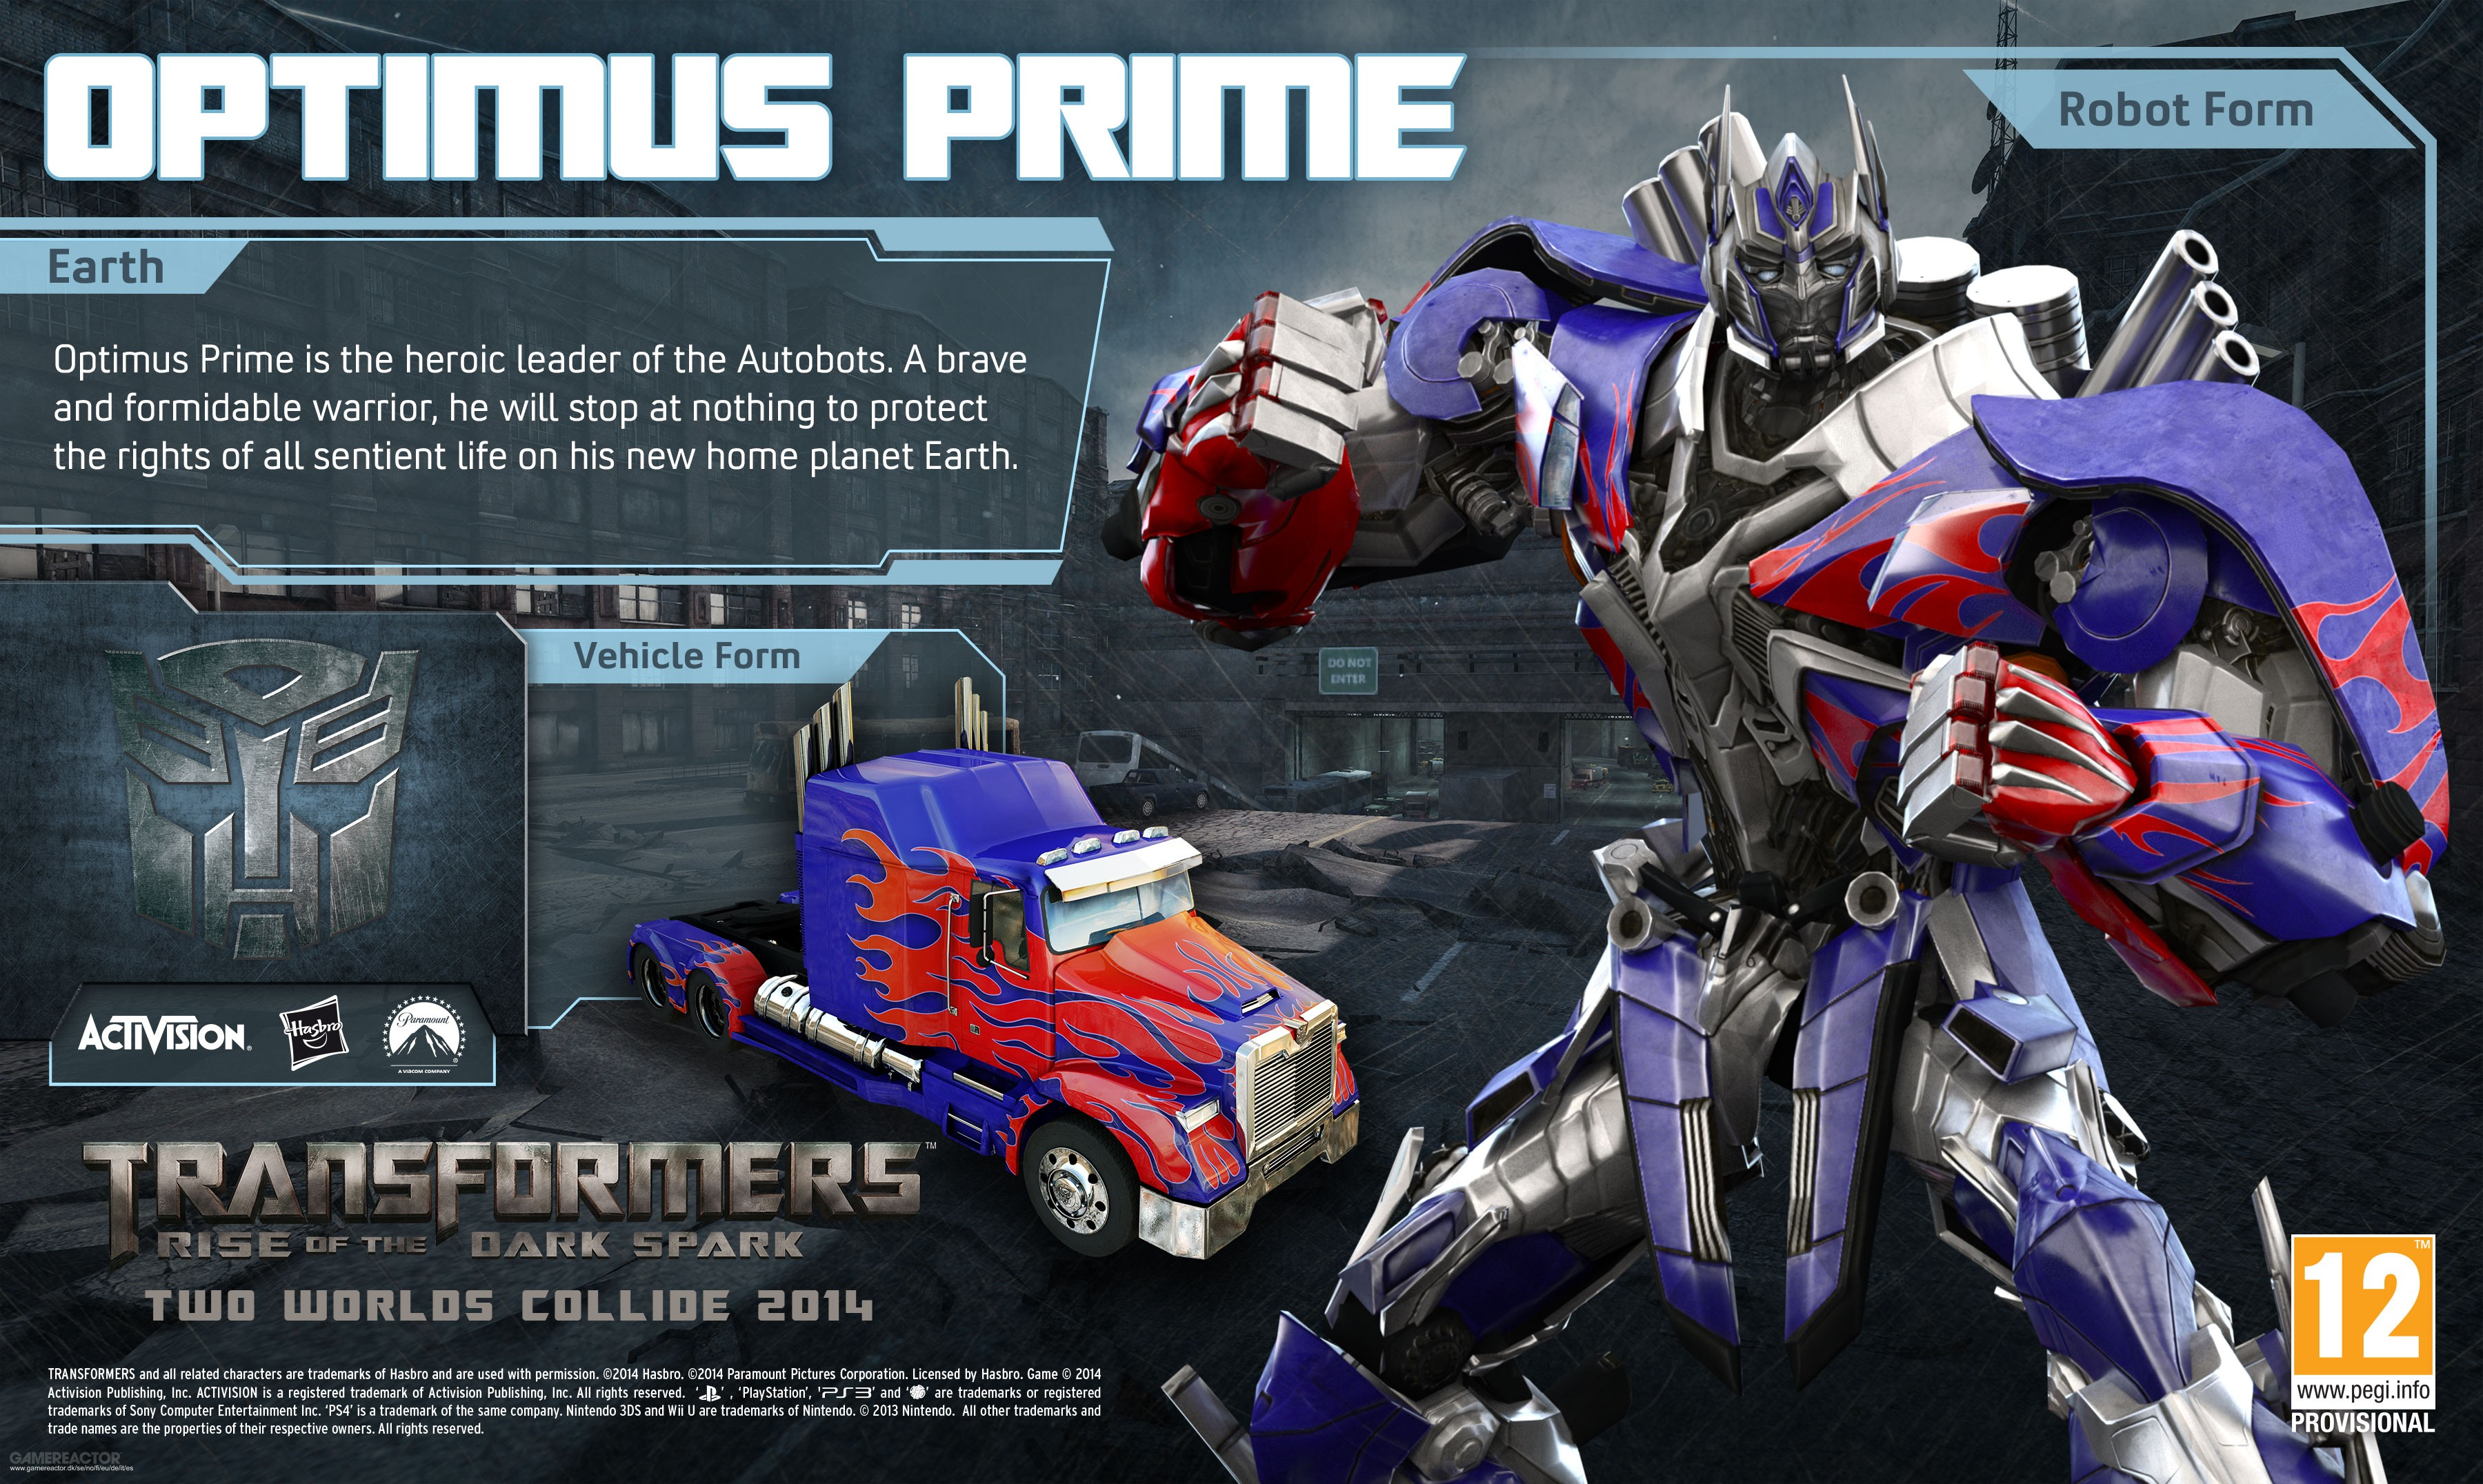 pictures of optimus prime in transformers: rise of the dark spark 3/5